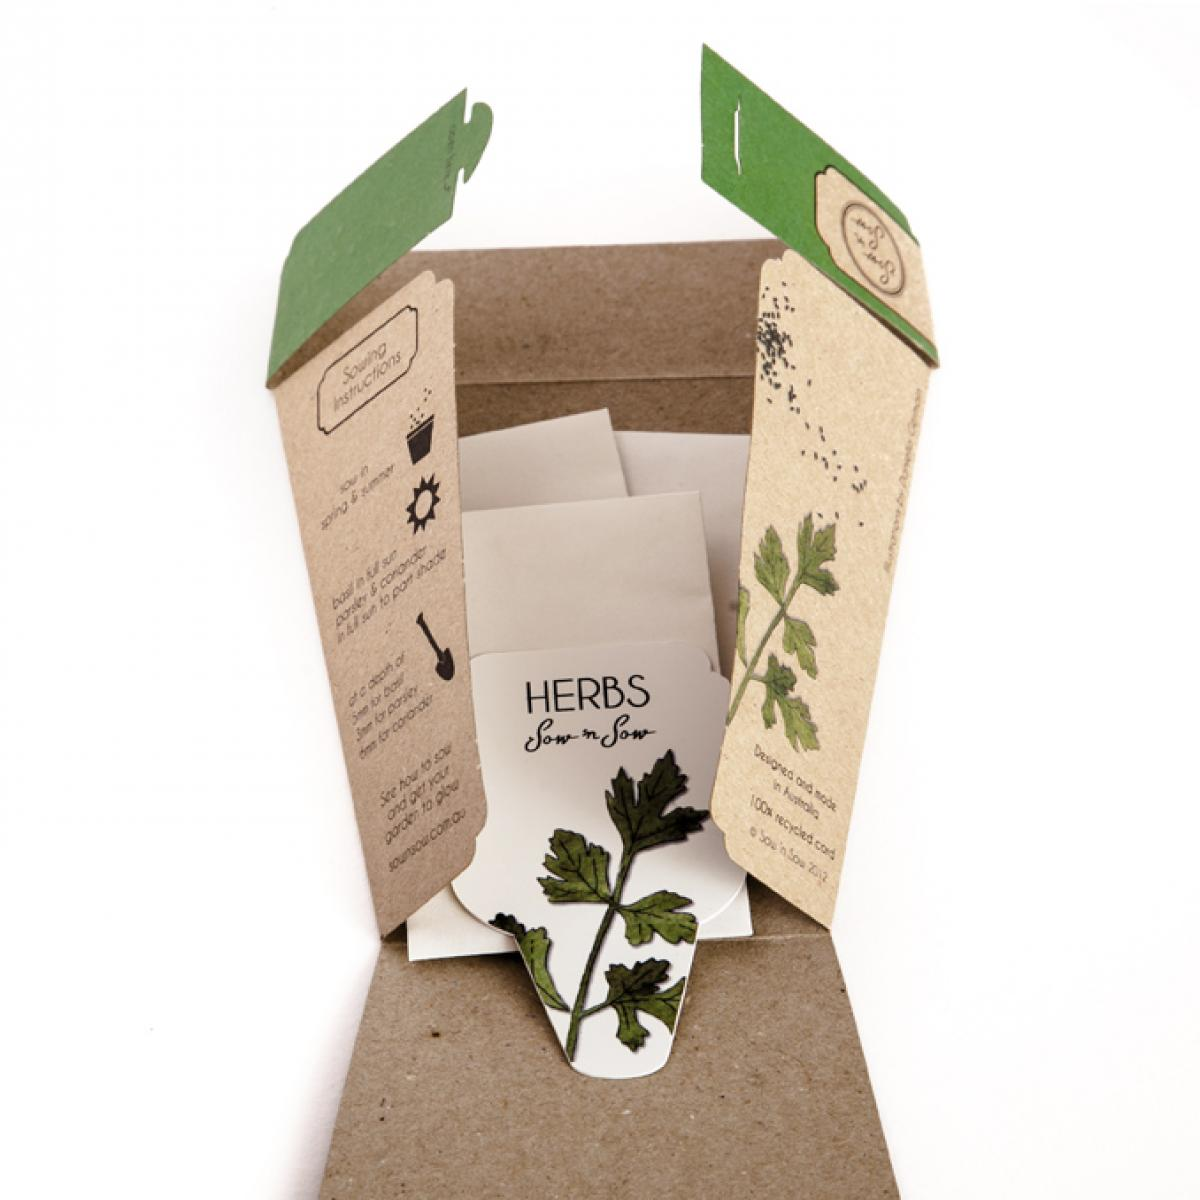 Sow 'n Sow Gift Card with Seeds - Trio of Herbs